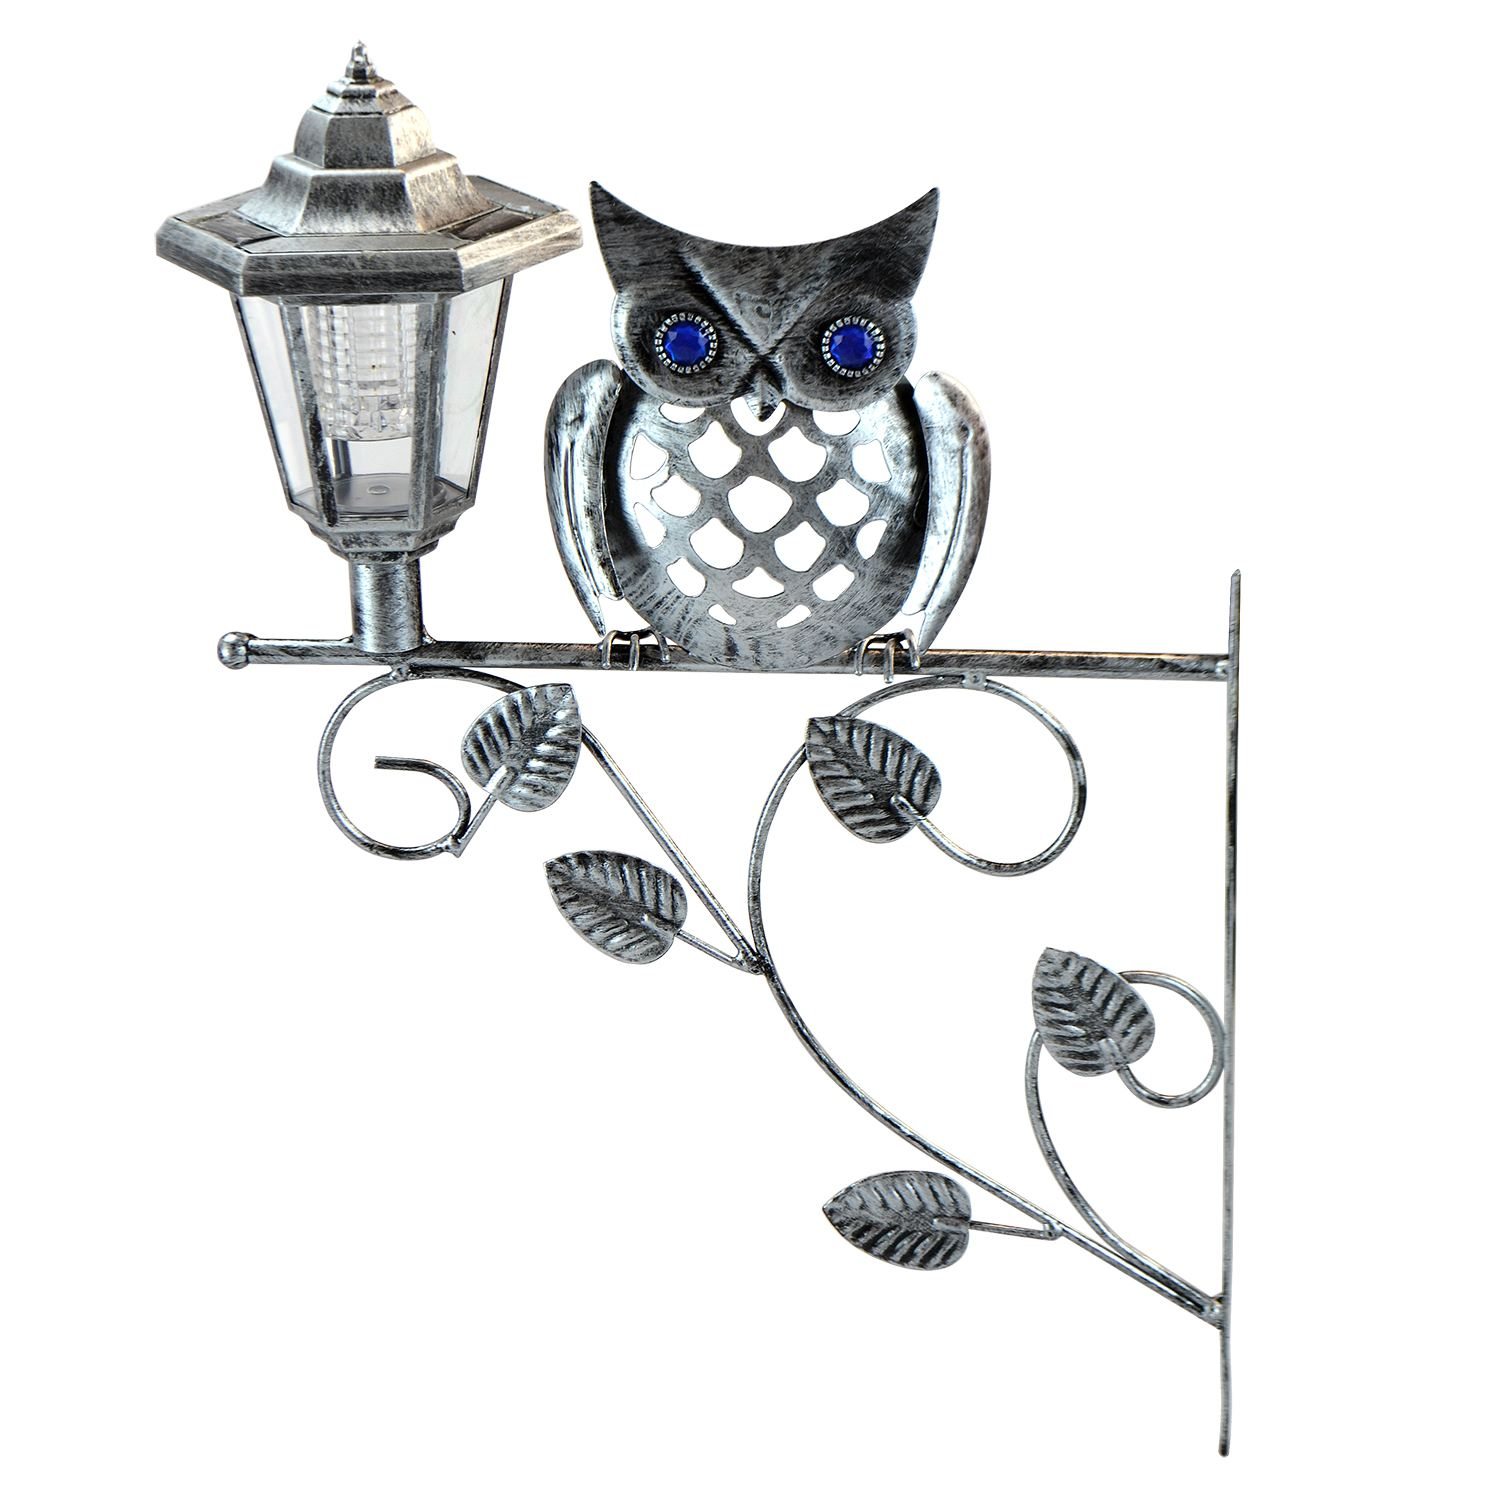 Traditional Solar Powered Owl Lantern Wall Bracket Light